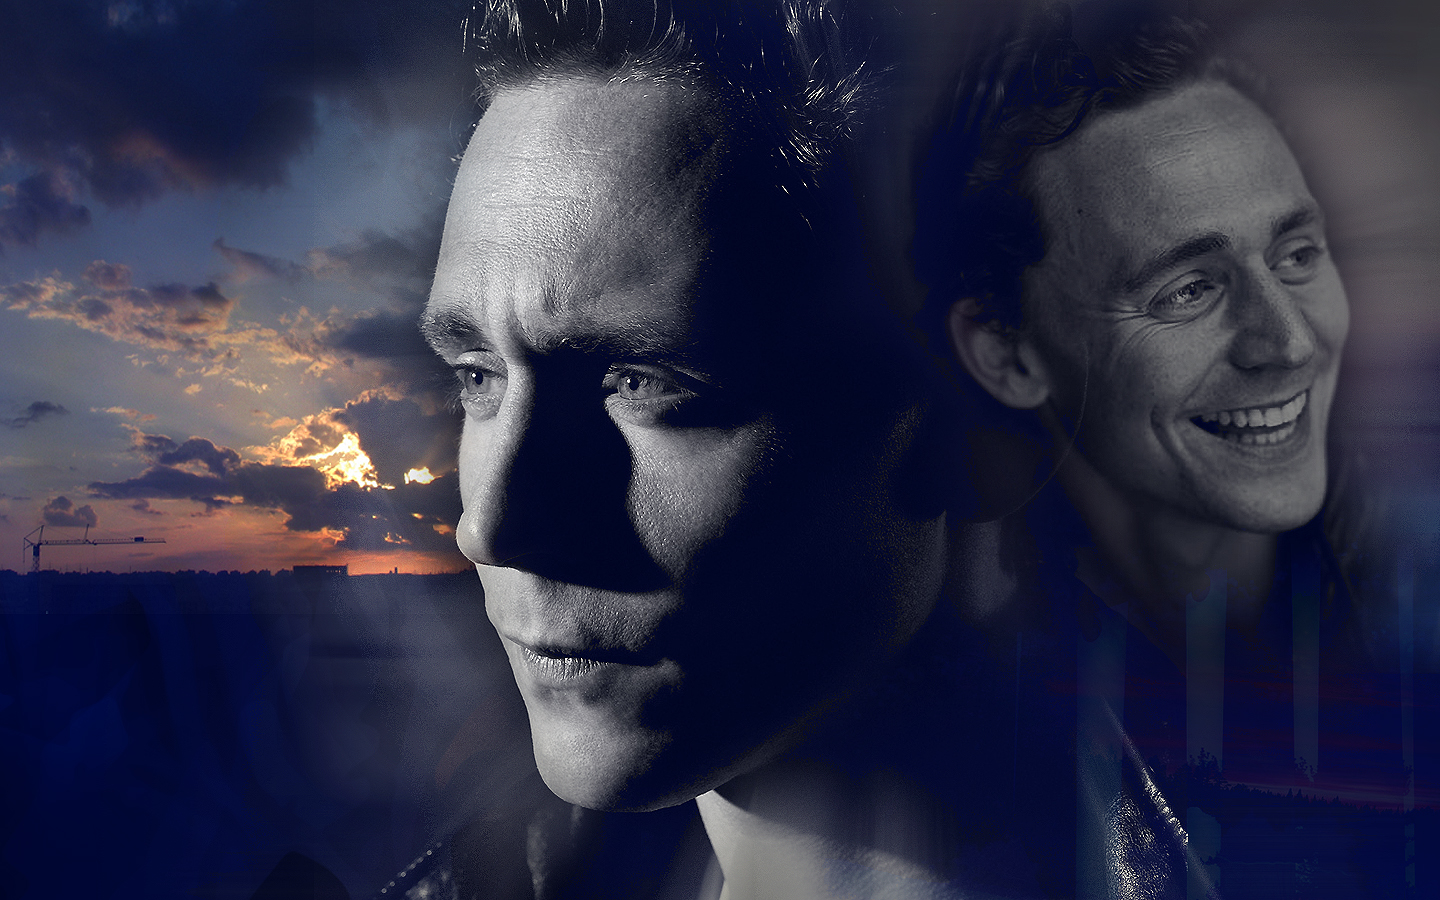 Tom Hiddleston Wallpaper   Tom Hiddleston Wallpaper 31481185 1440x900